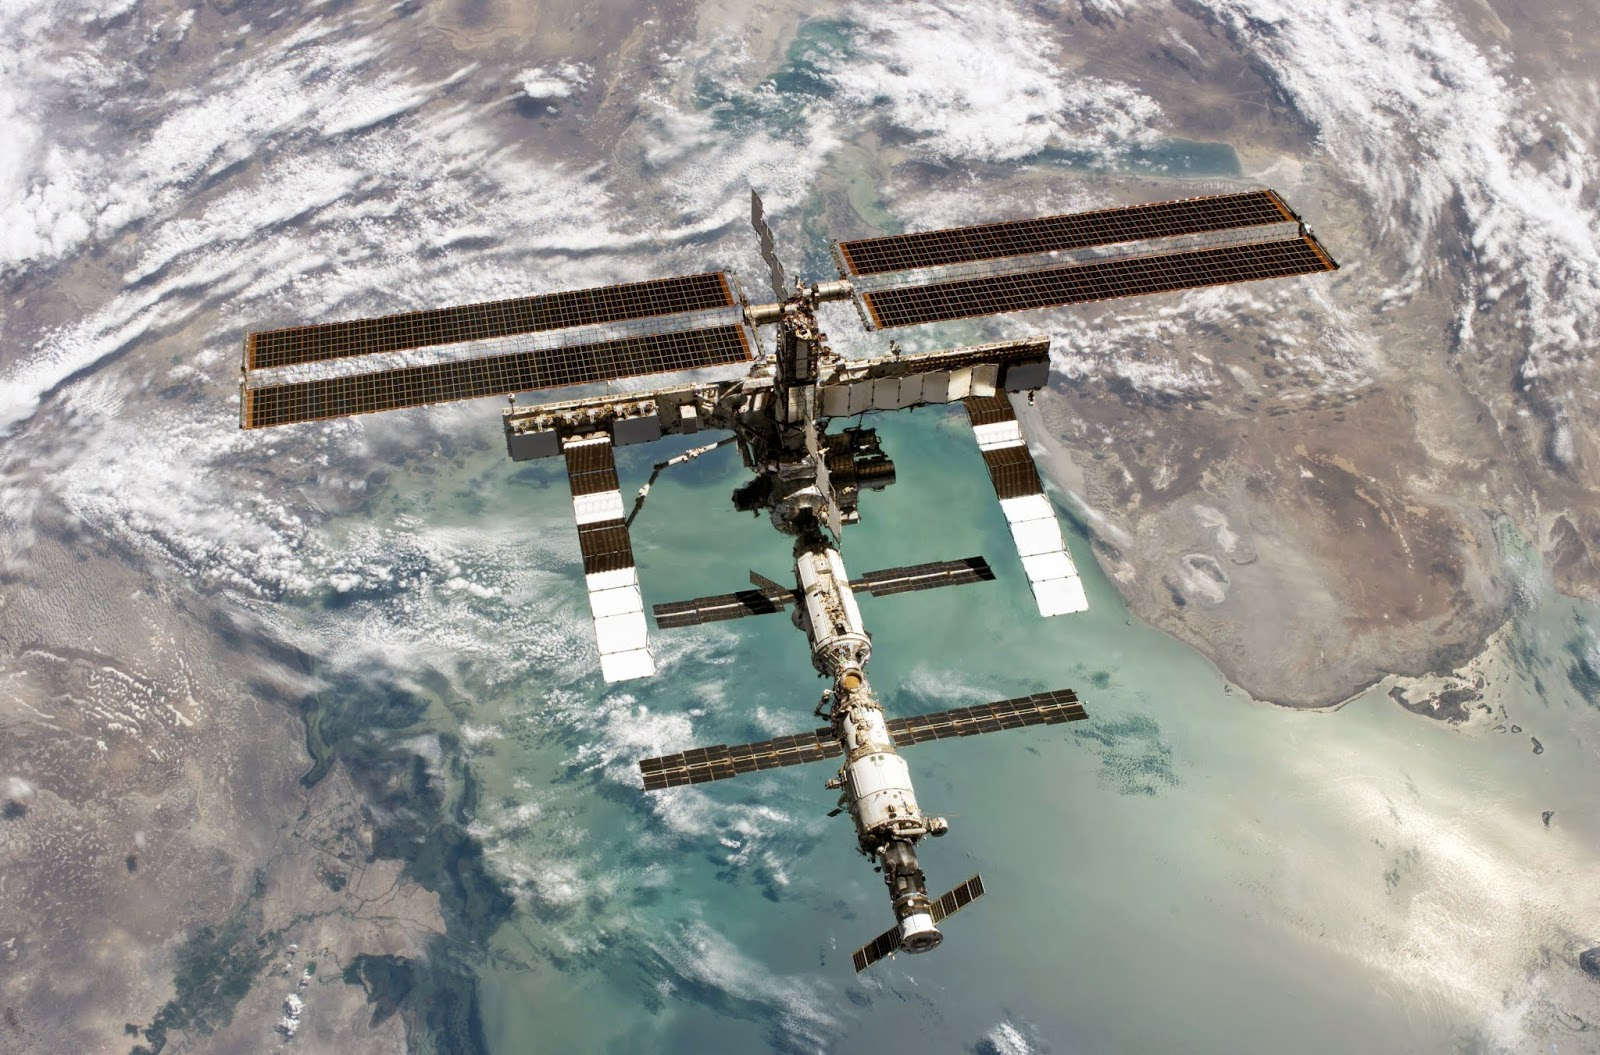 international space station from earth to current transportation - photo #23